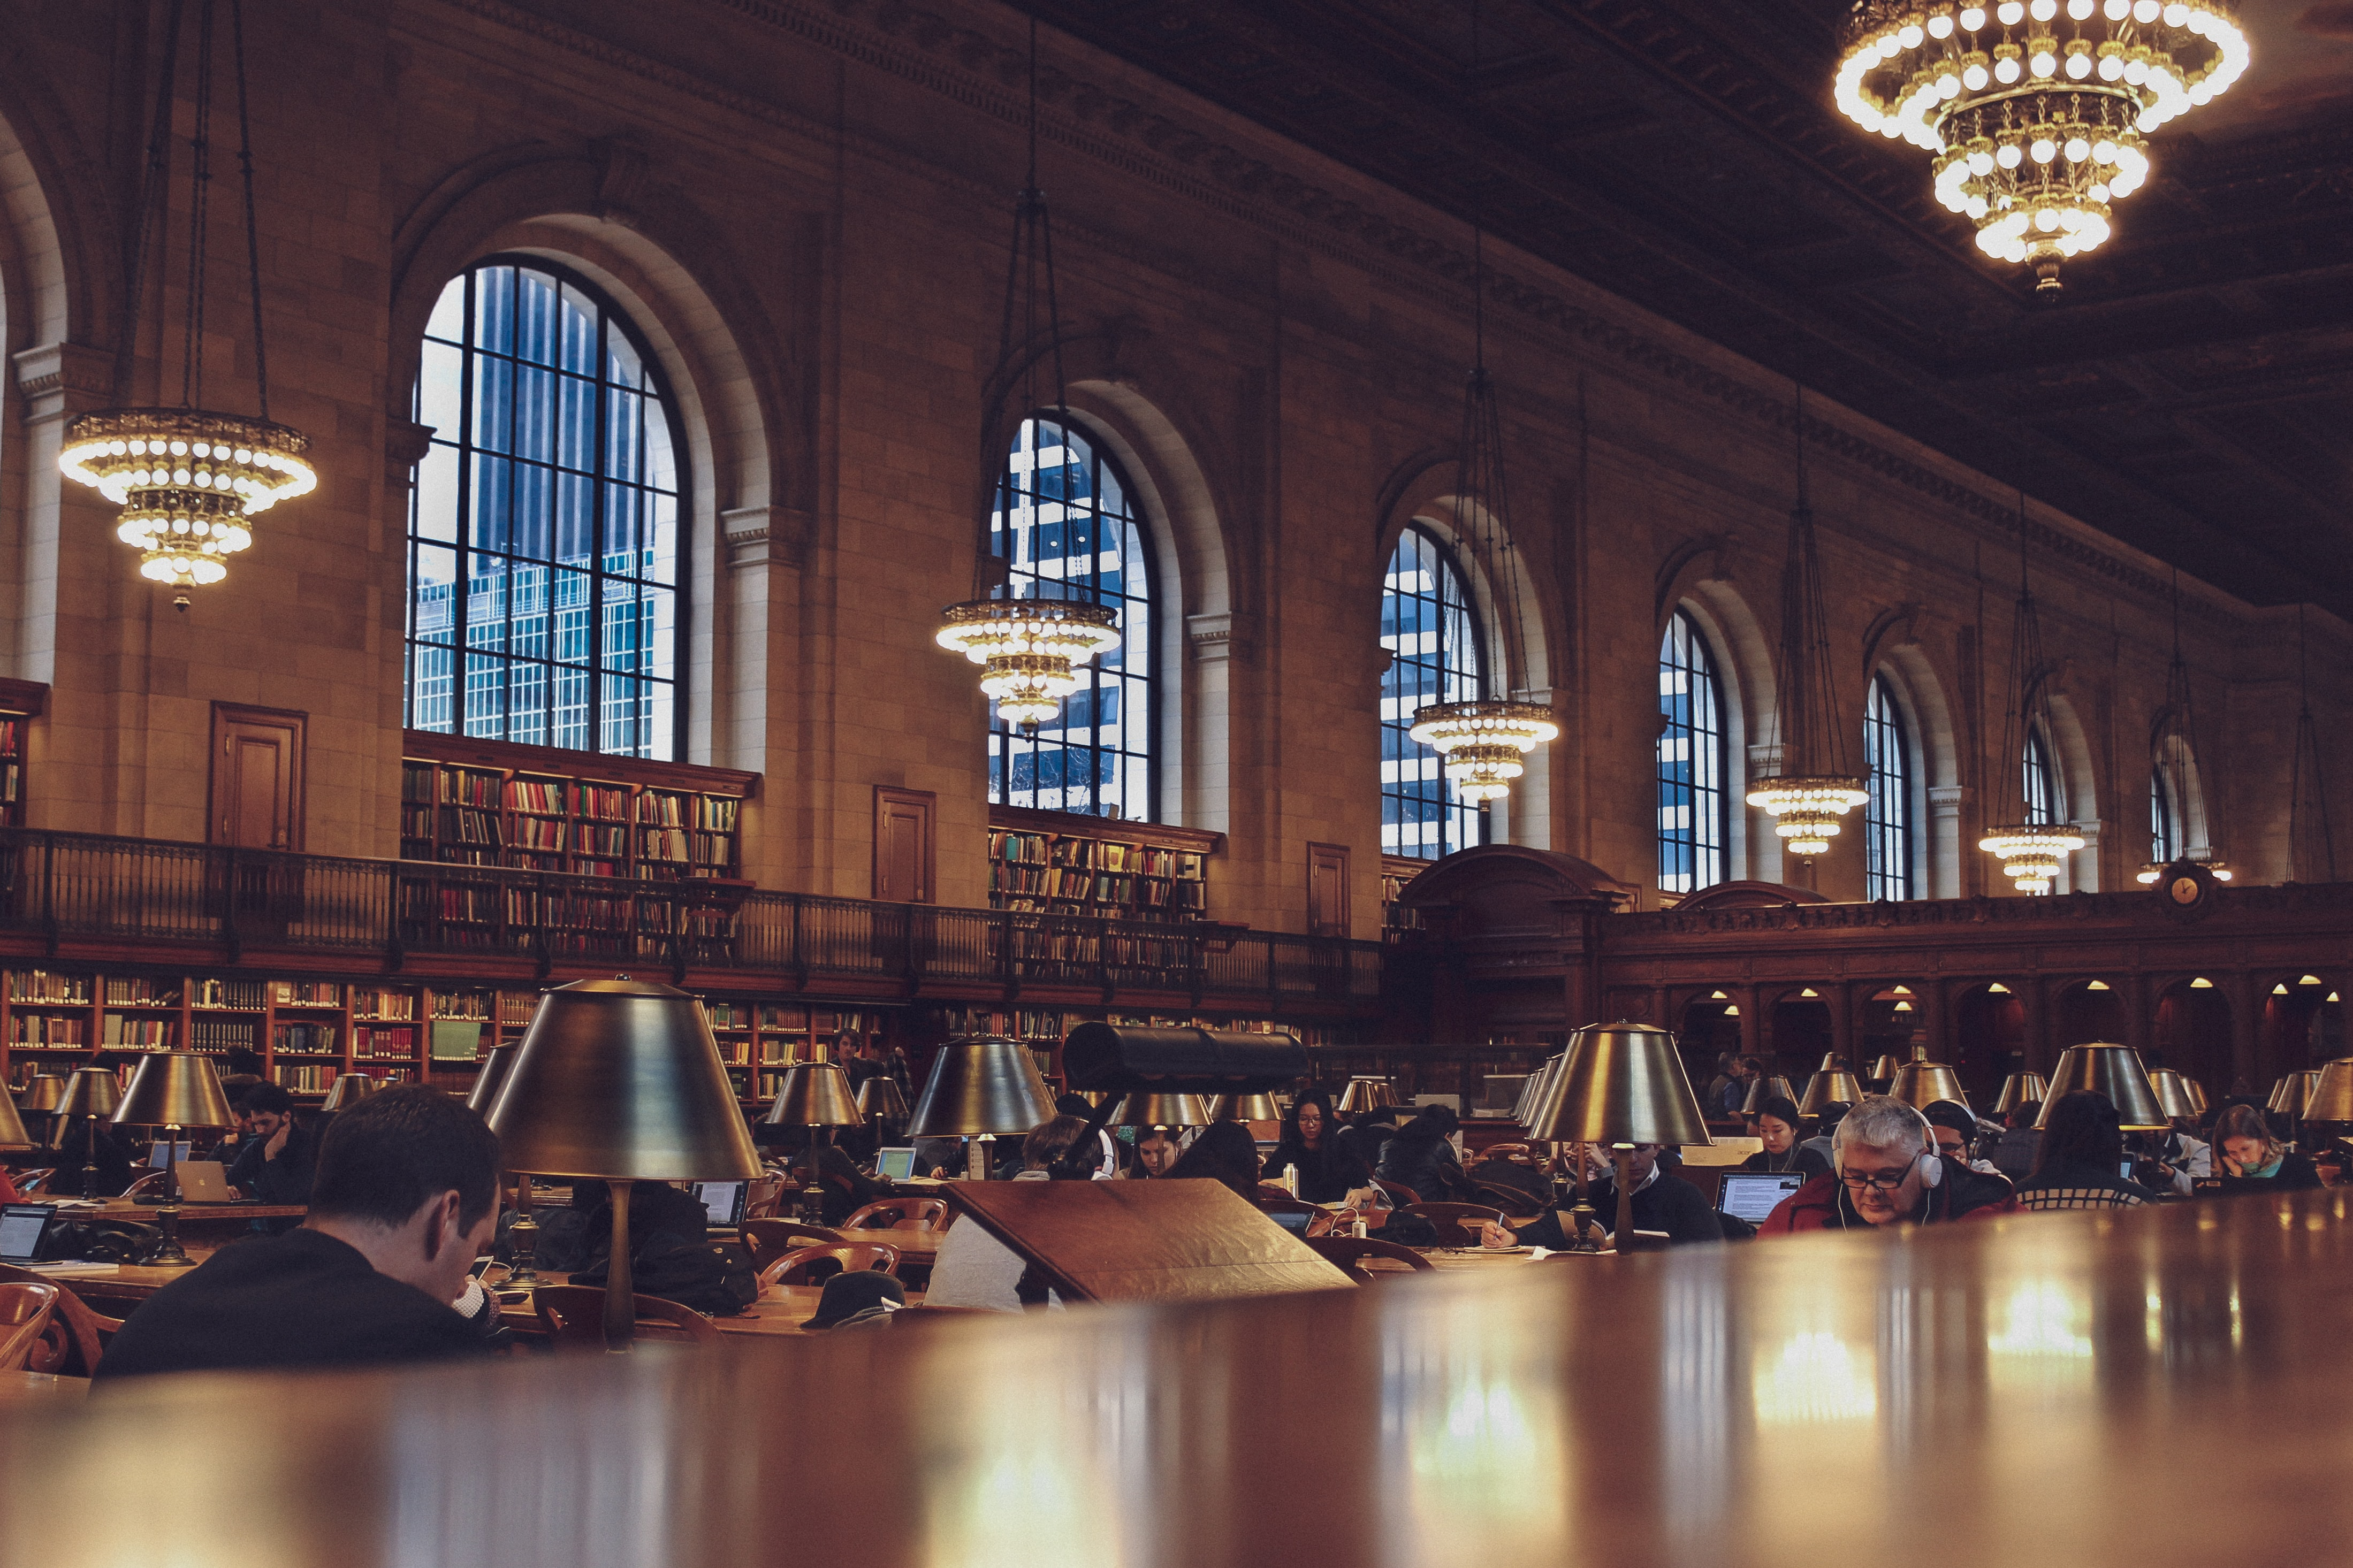 people reading inside library building